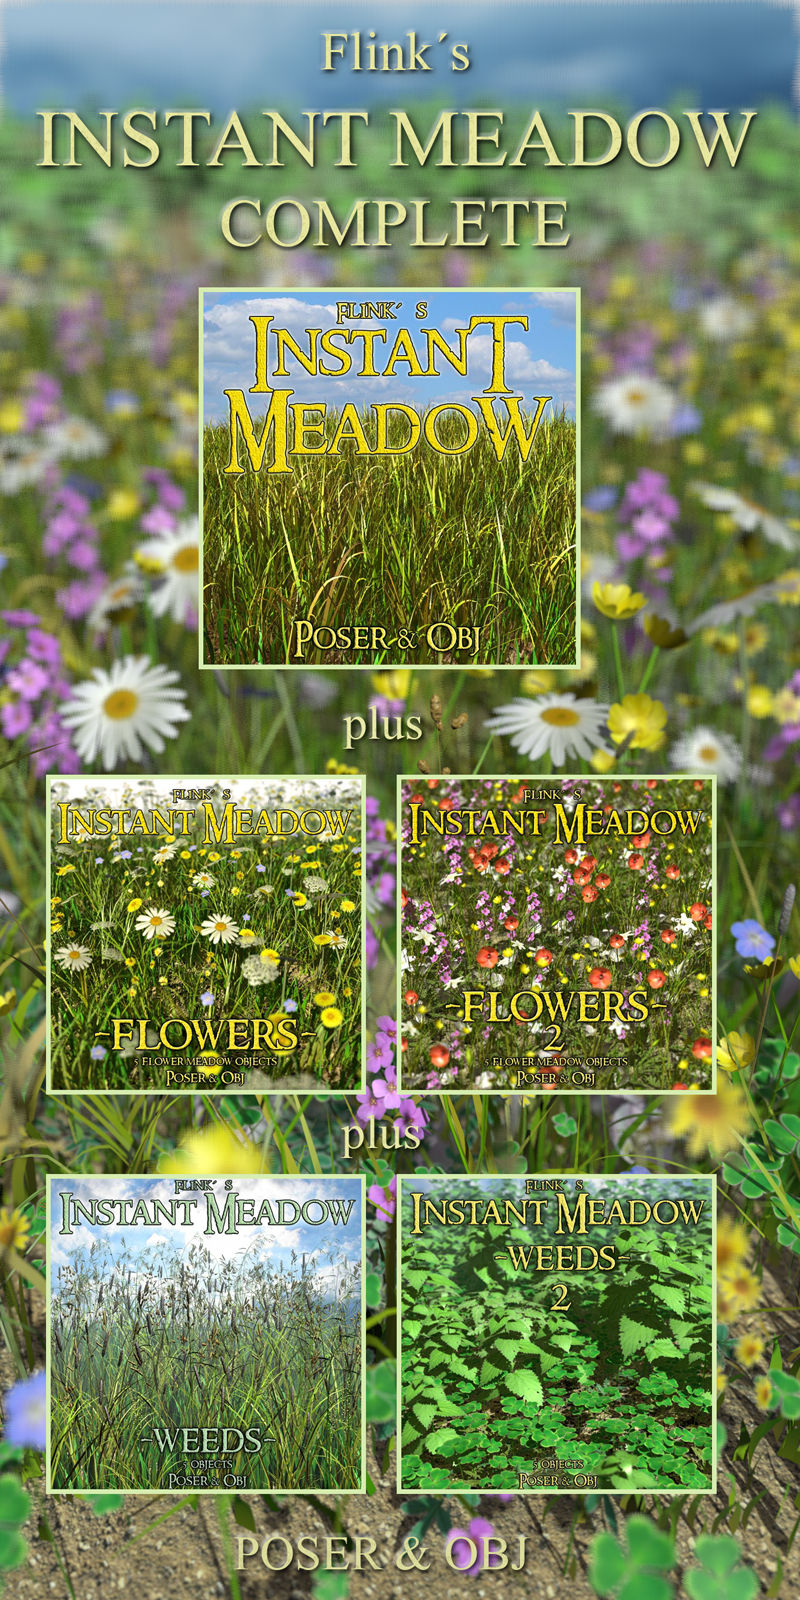 Flinks Instant Meadow Complete